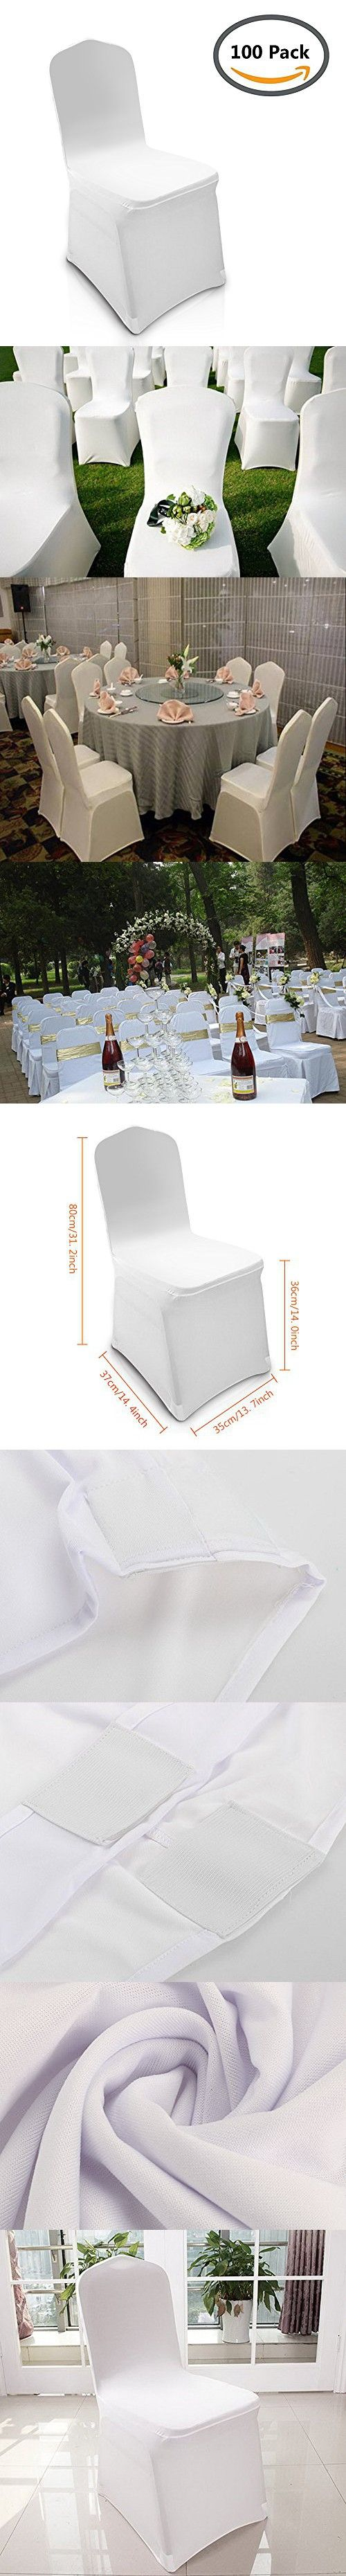 Homdox universal 100pcs White Chair Covers Spandex/Lycra Metal & Plastic Folding Decoration For Wedding, Banquet, Party